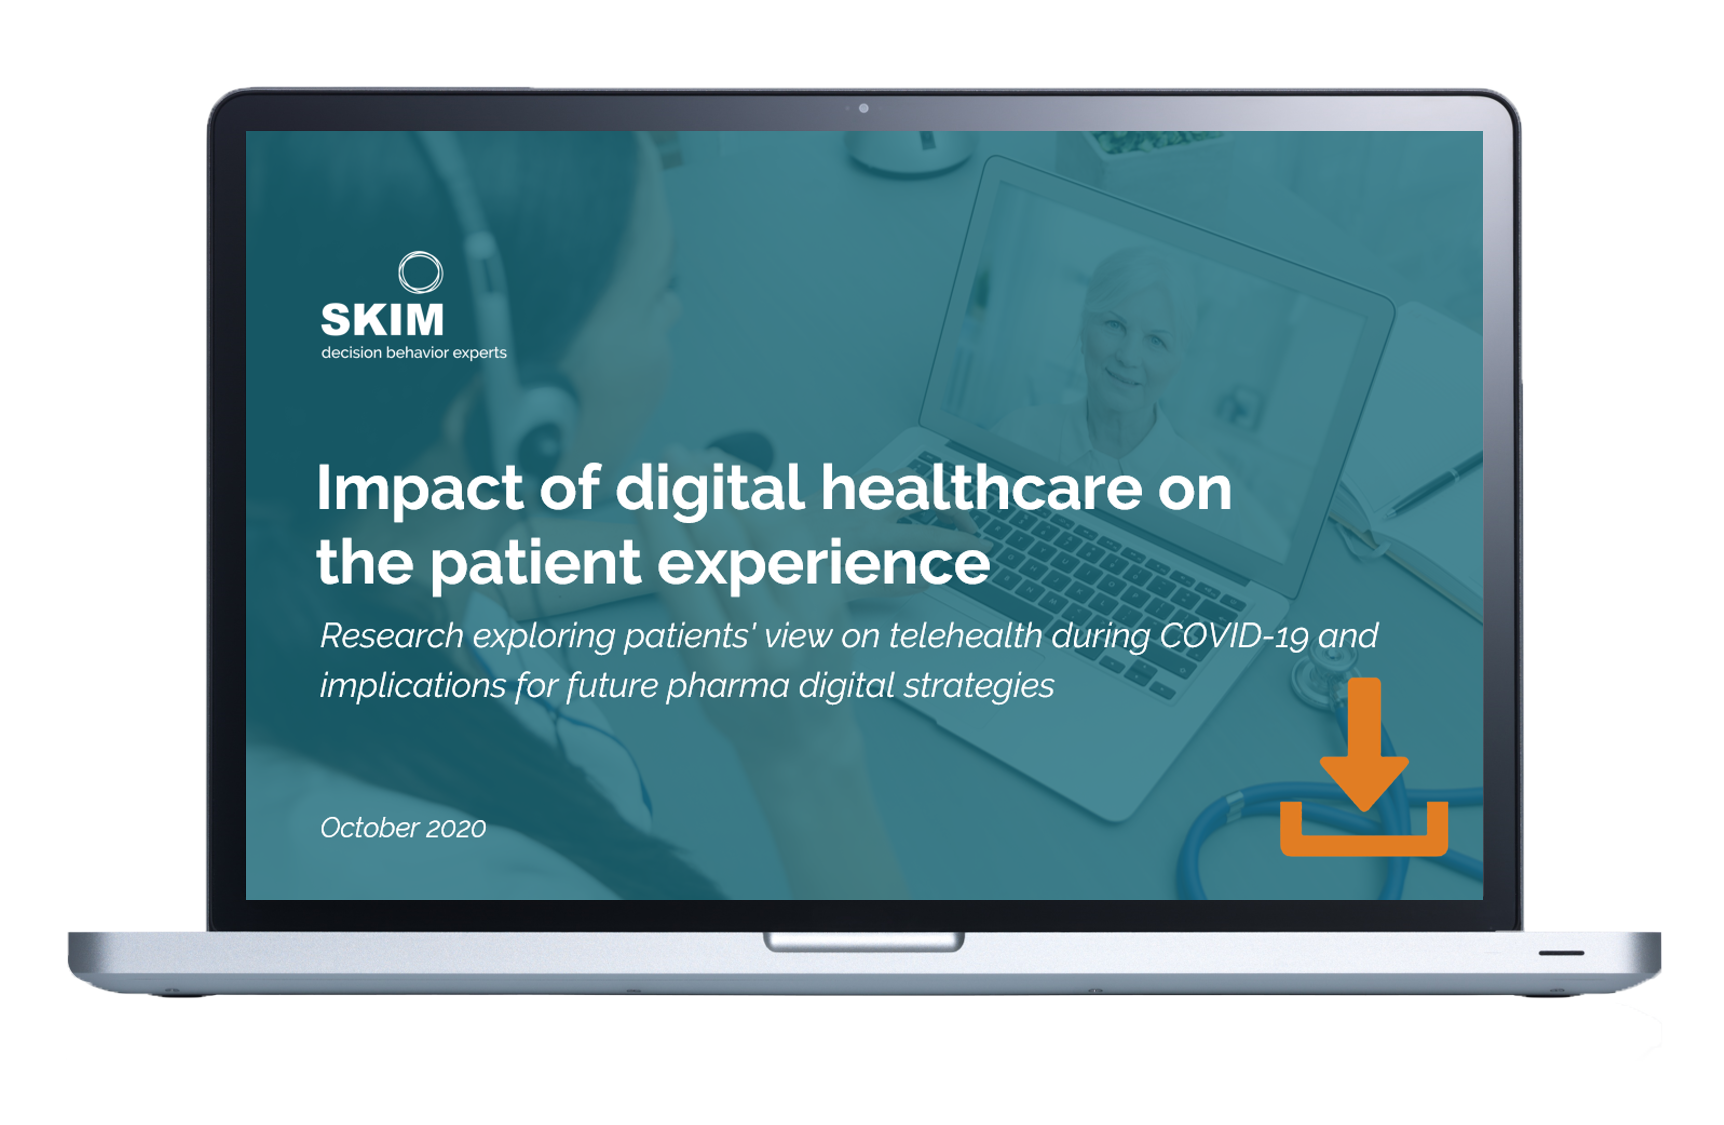 Download-Impact-of-digital-healthcare-on-the-patient-experience